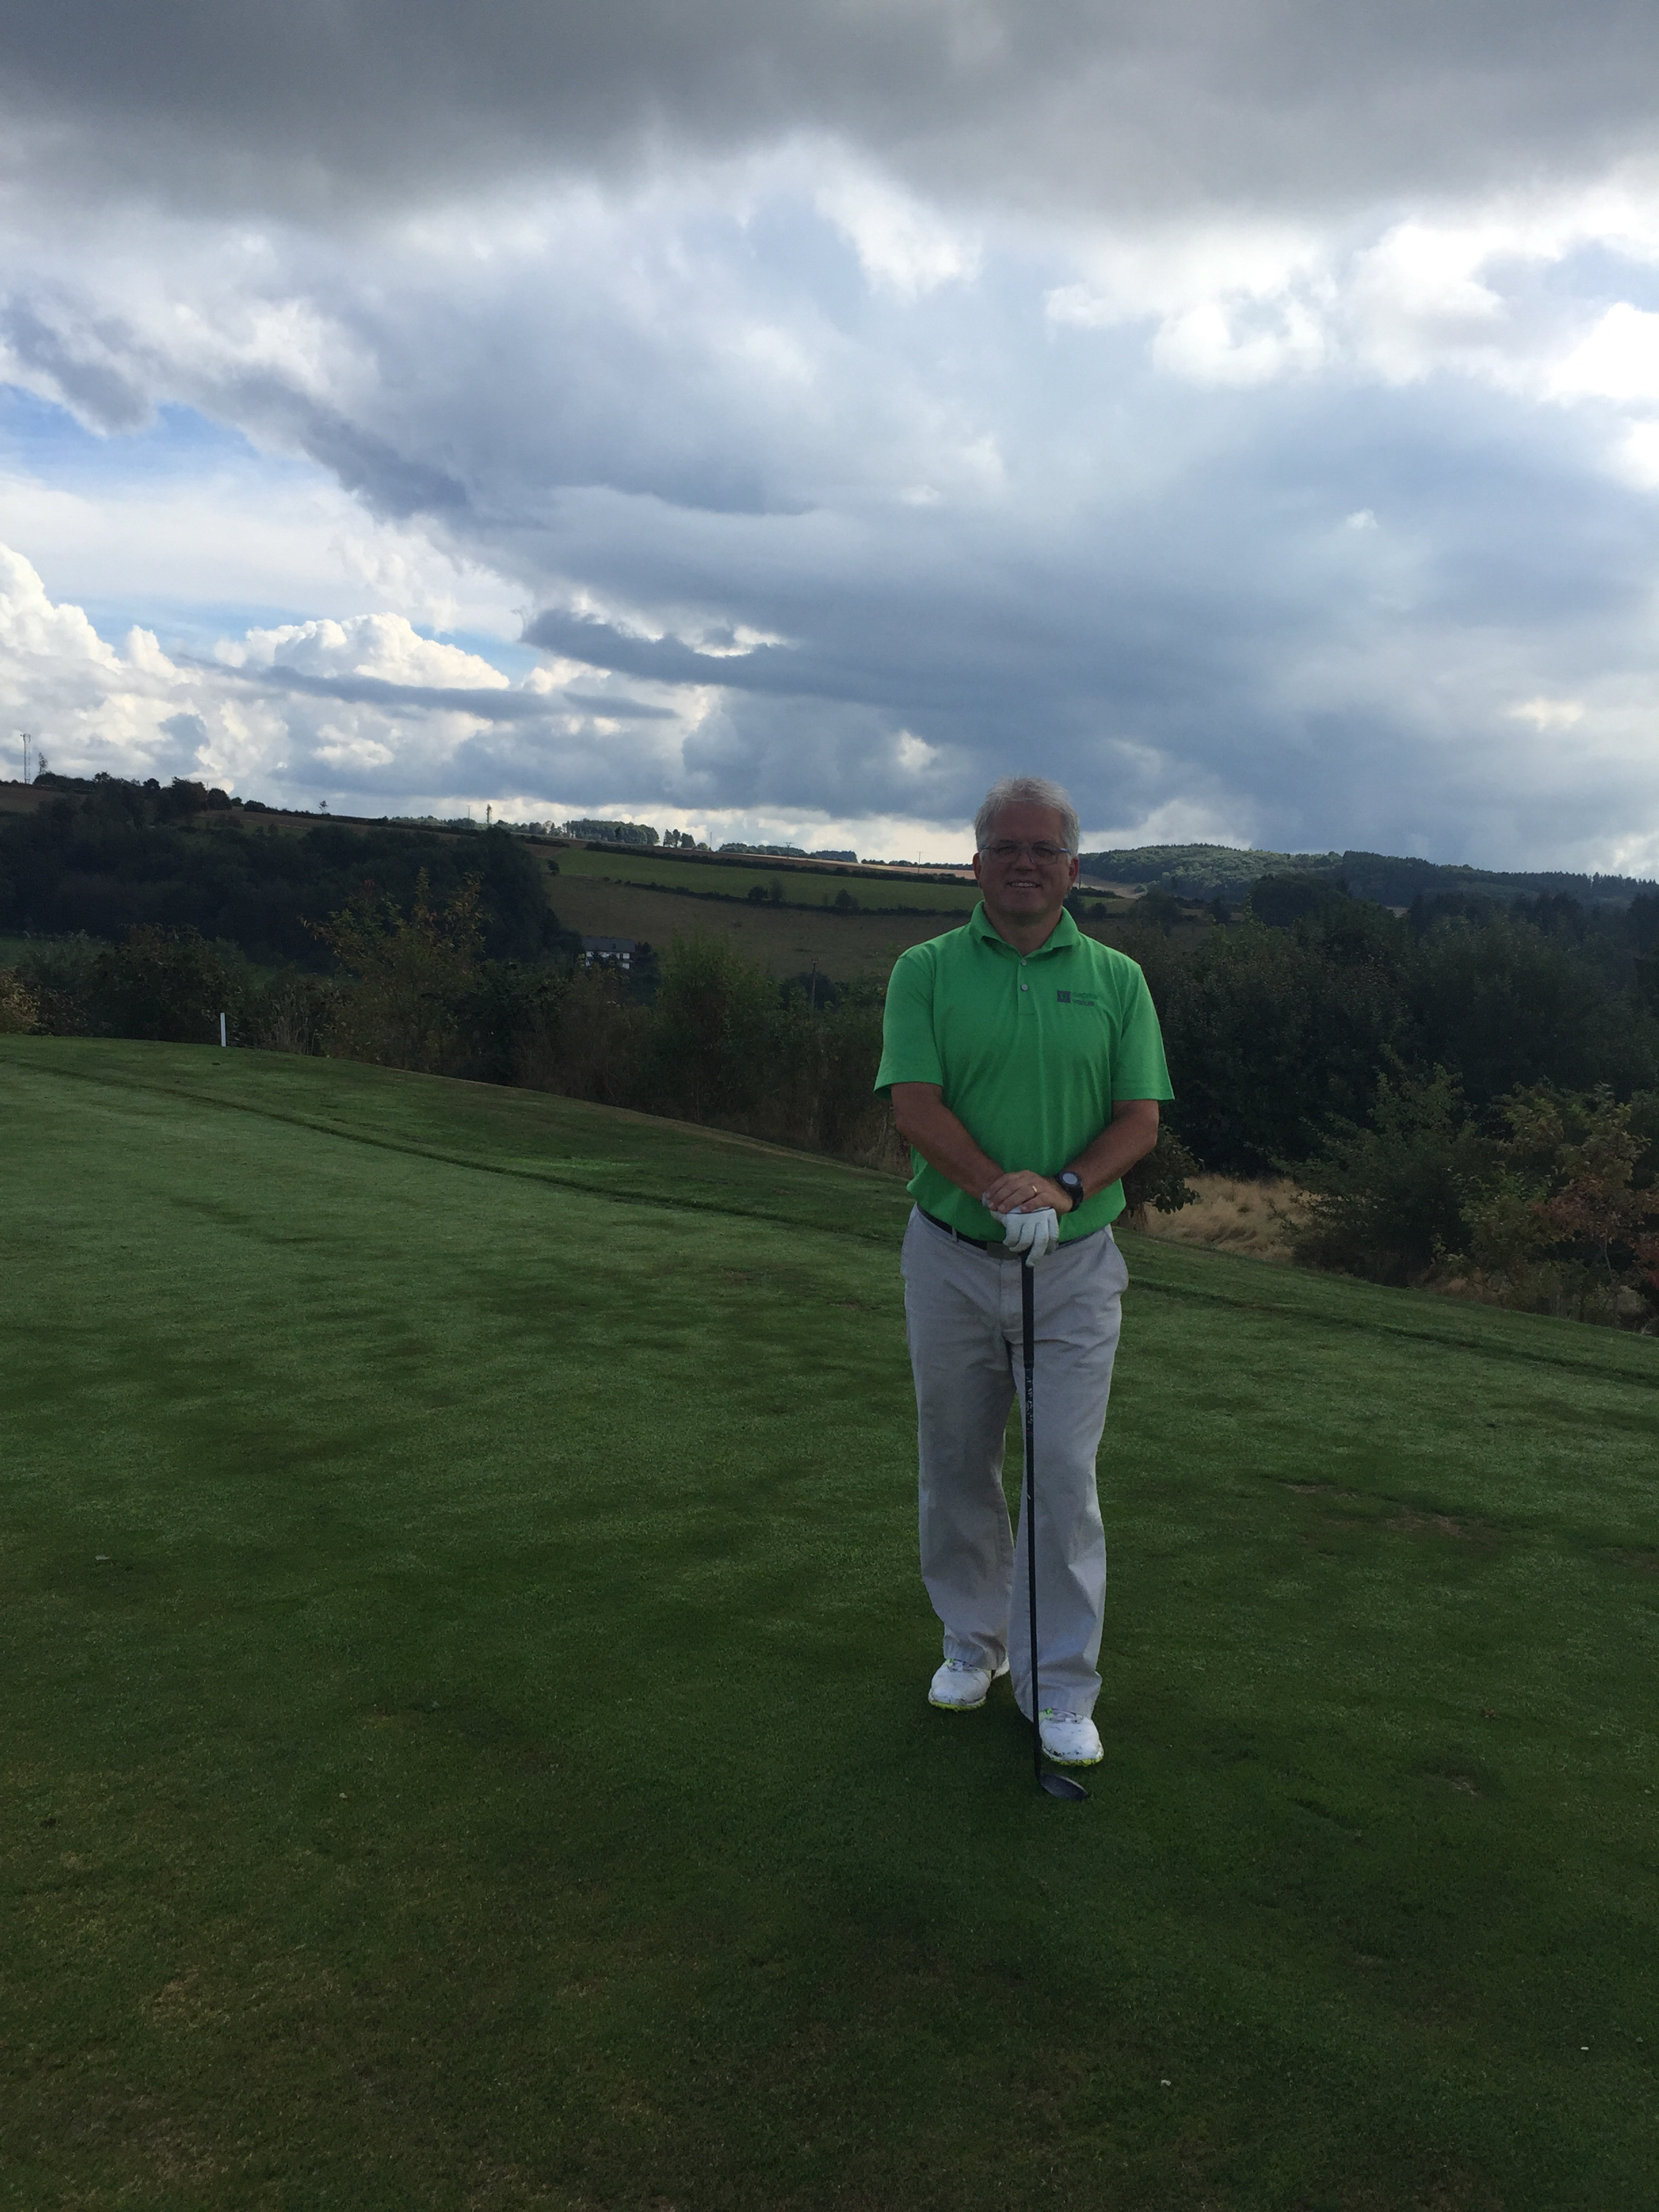 Avatar of golfer named Johannes Magar